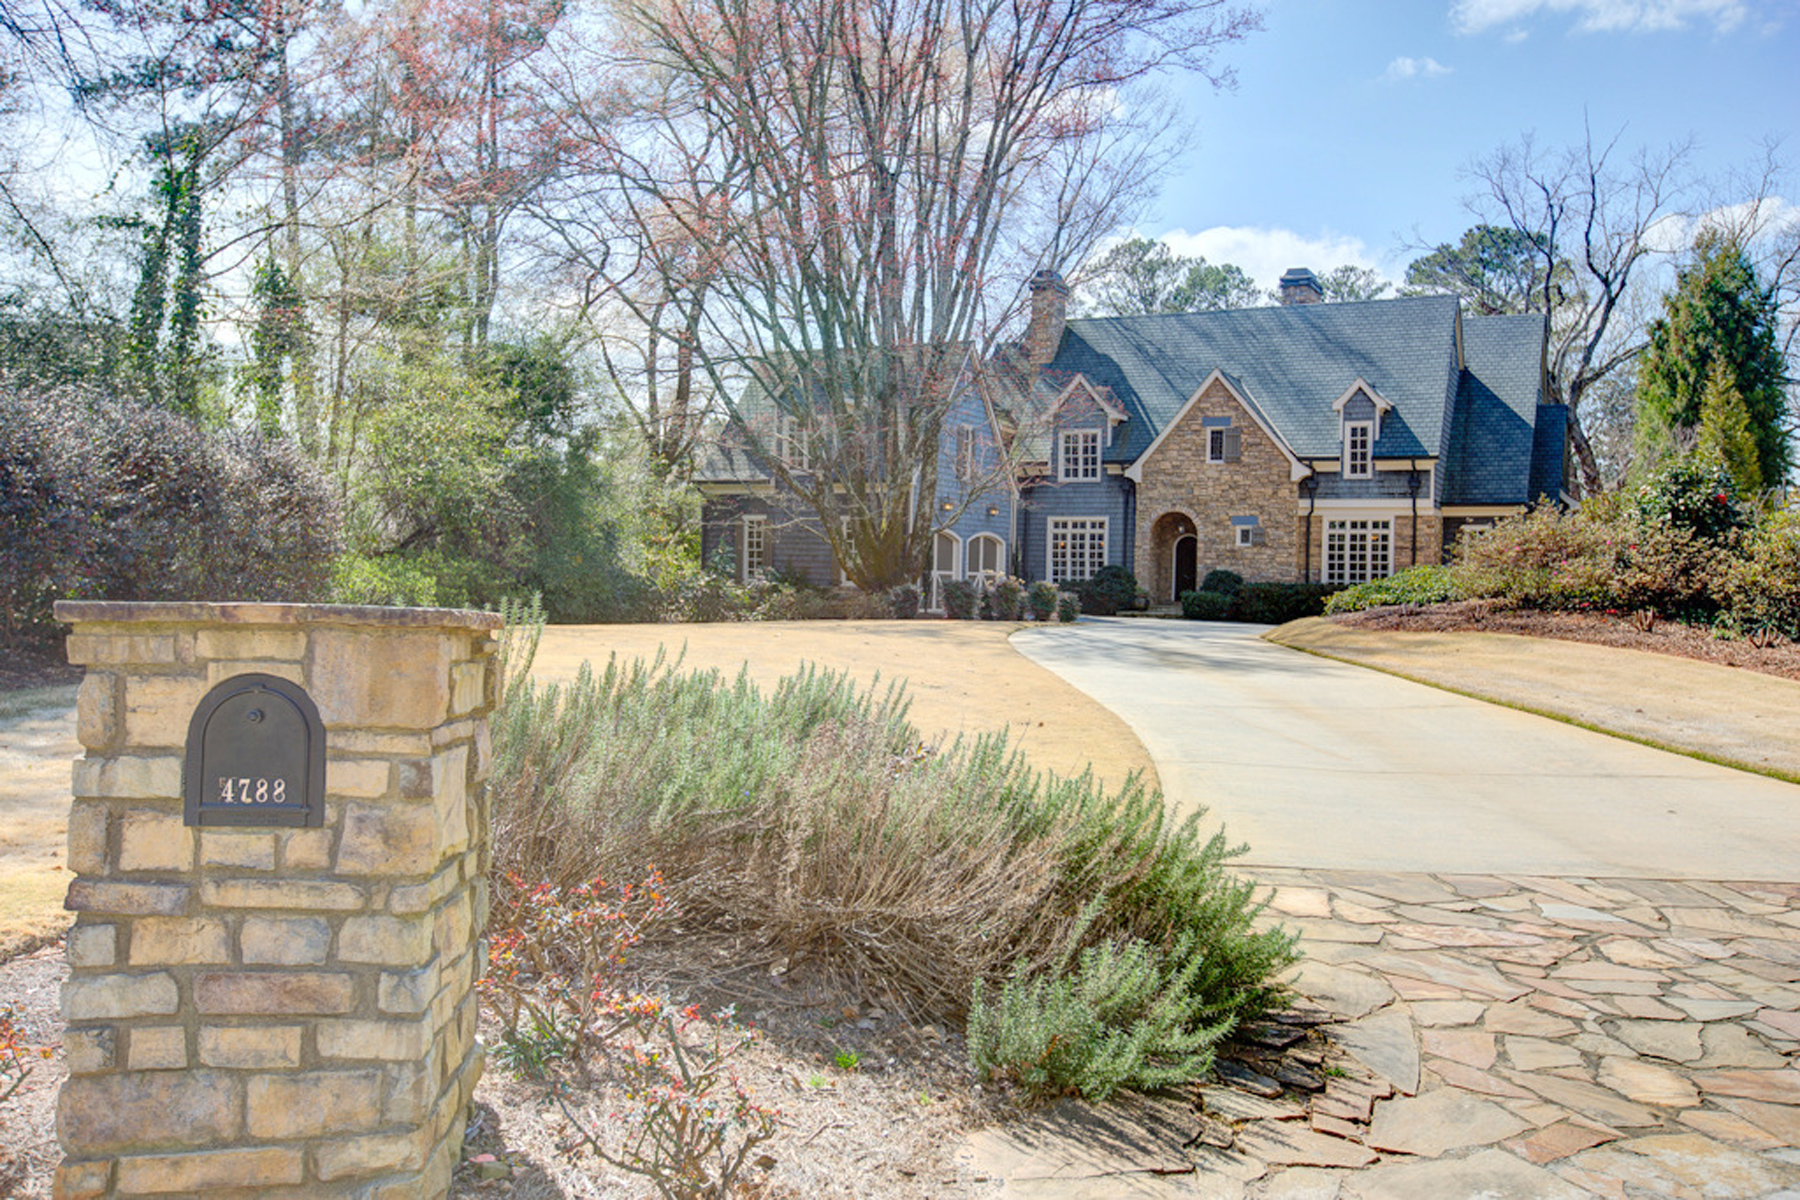 Moradia para Venda às Absolutely Stunning Custom Built Home In Chastain Park Area 4788 Dudley Lane Atlanta, Geórgia 30327 Estados Unidos